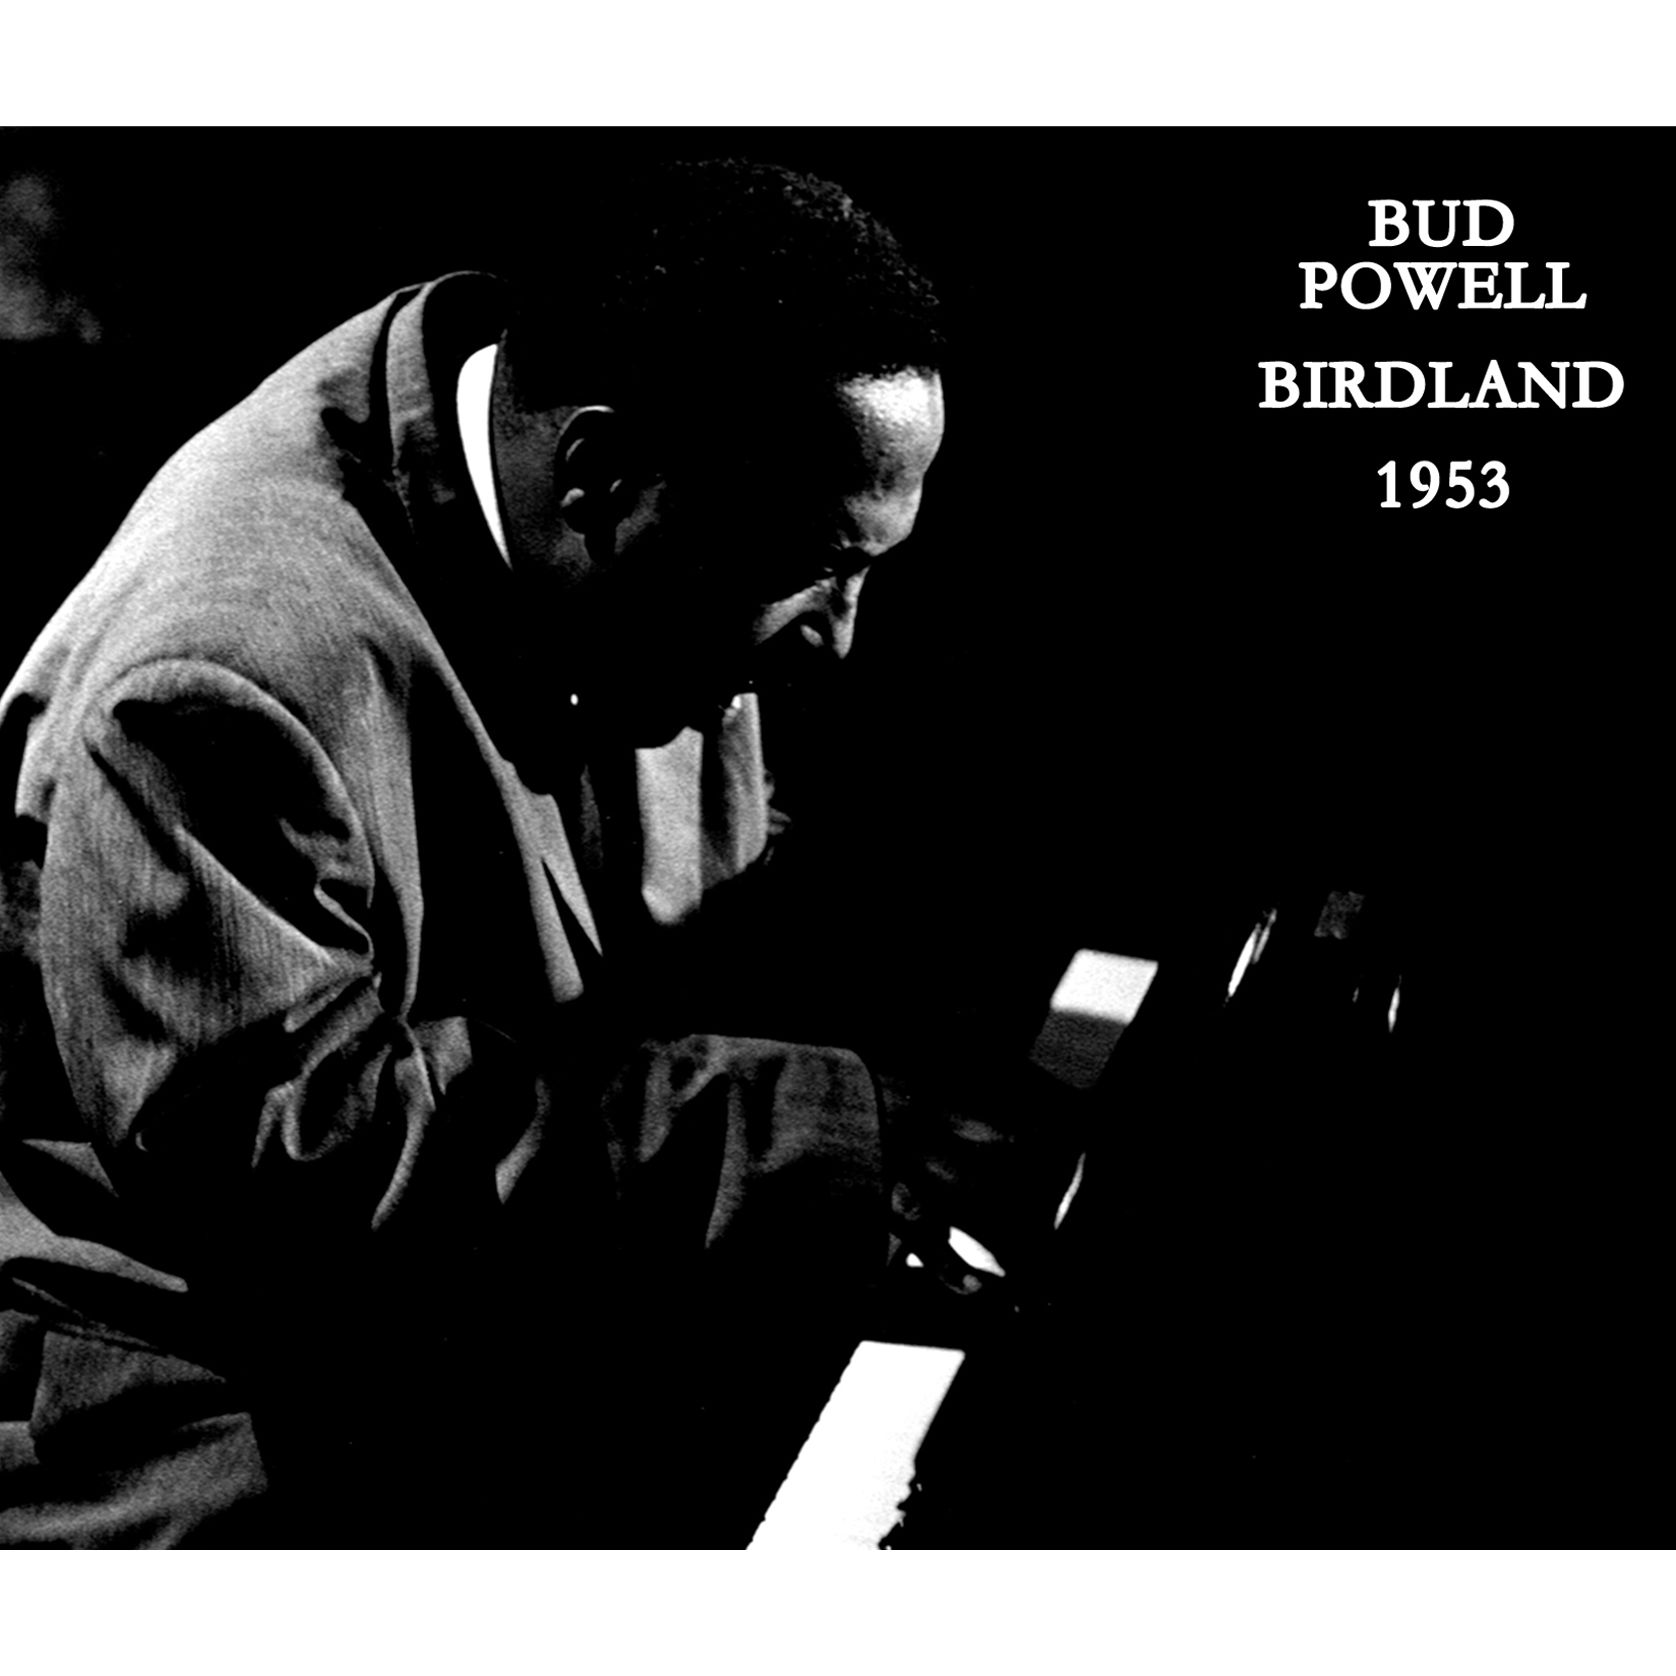 Art for It Could Happen To You by Bud Powell